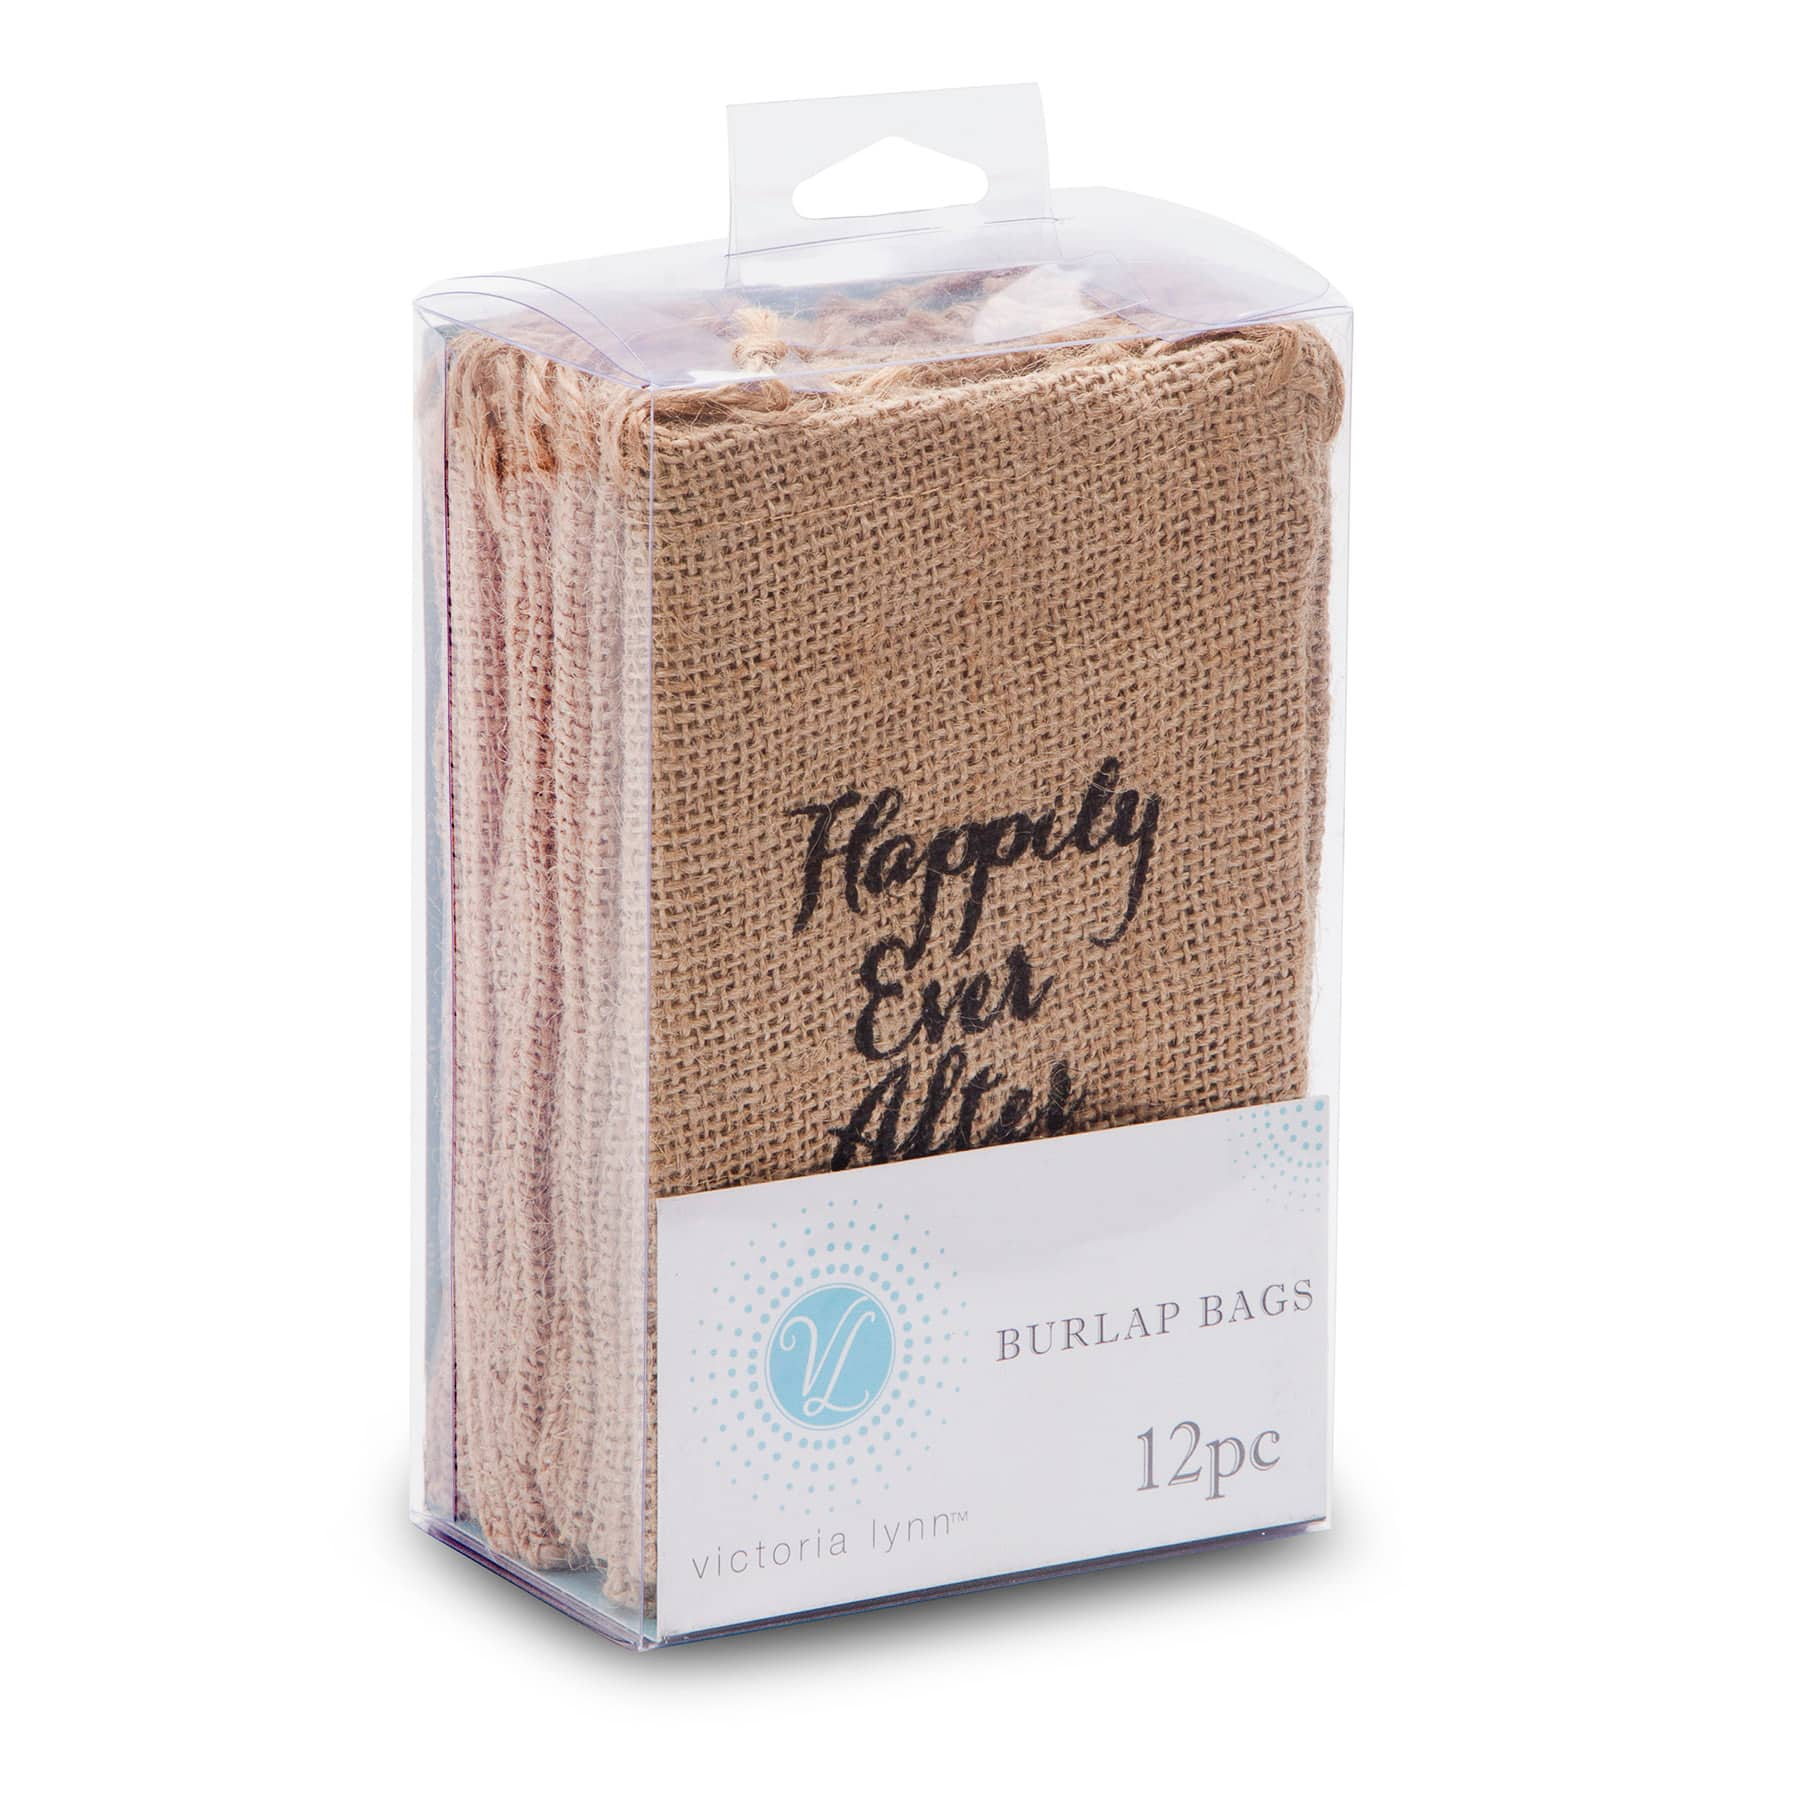 Small burlap bags Hessian Victoria Lynn Happily Ever After Mini Burlap Bags Fitnevolving Bags